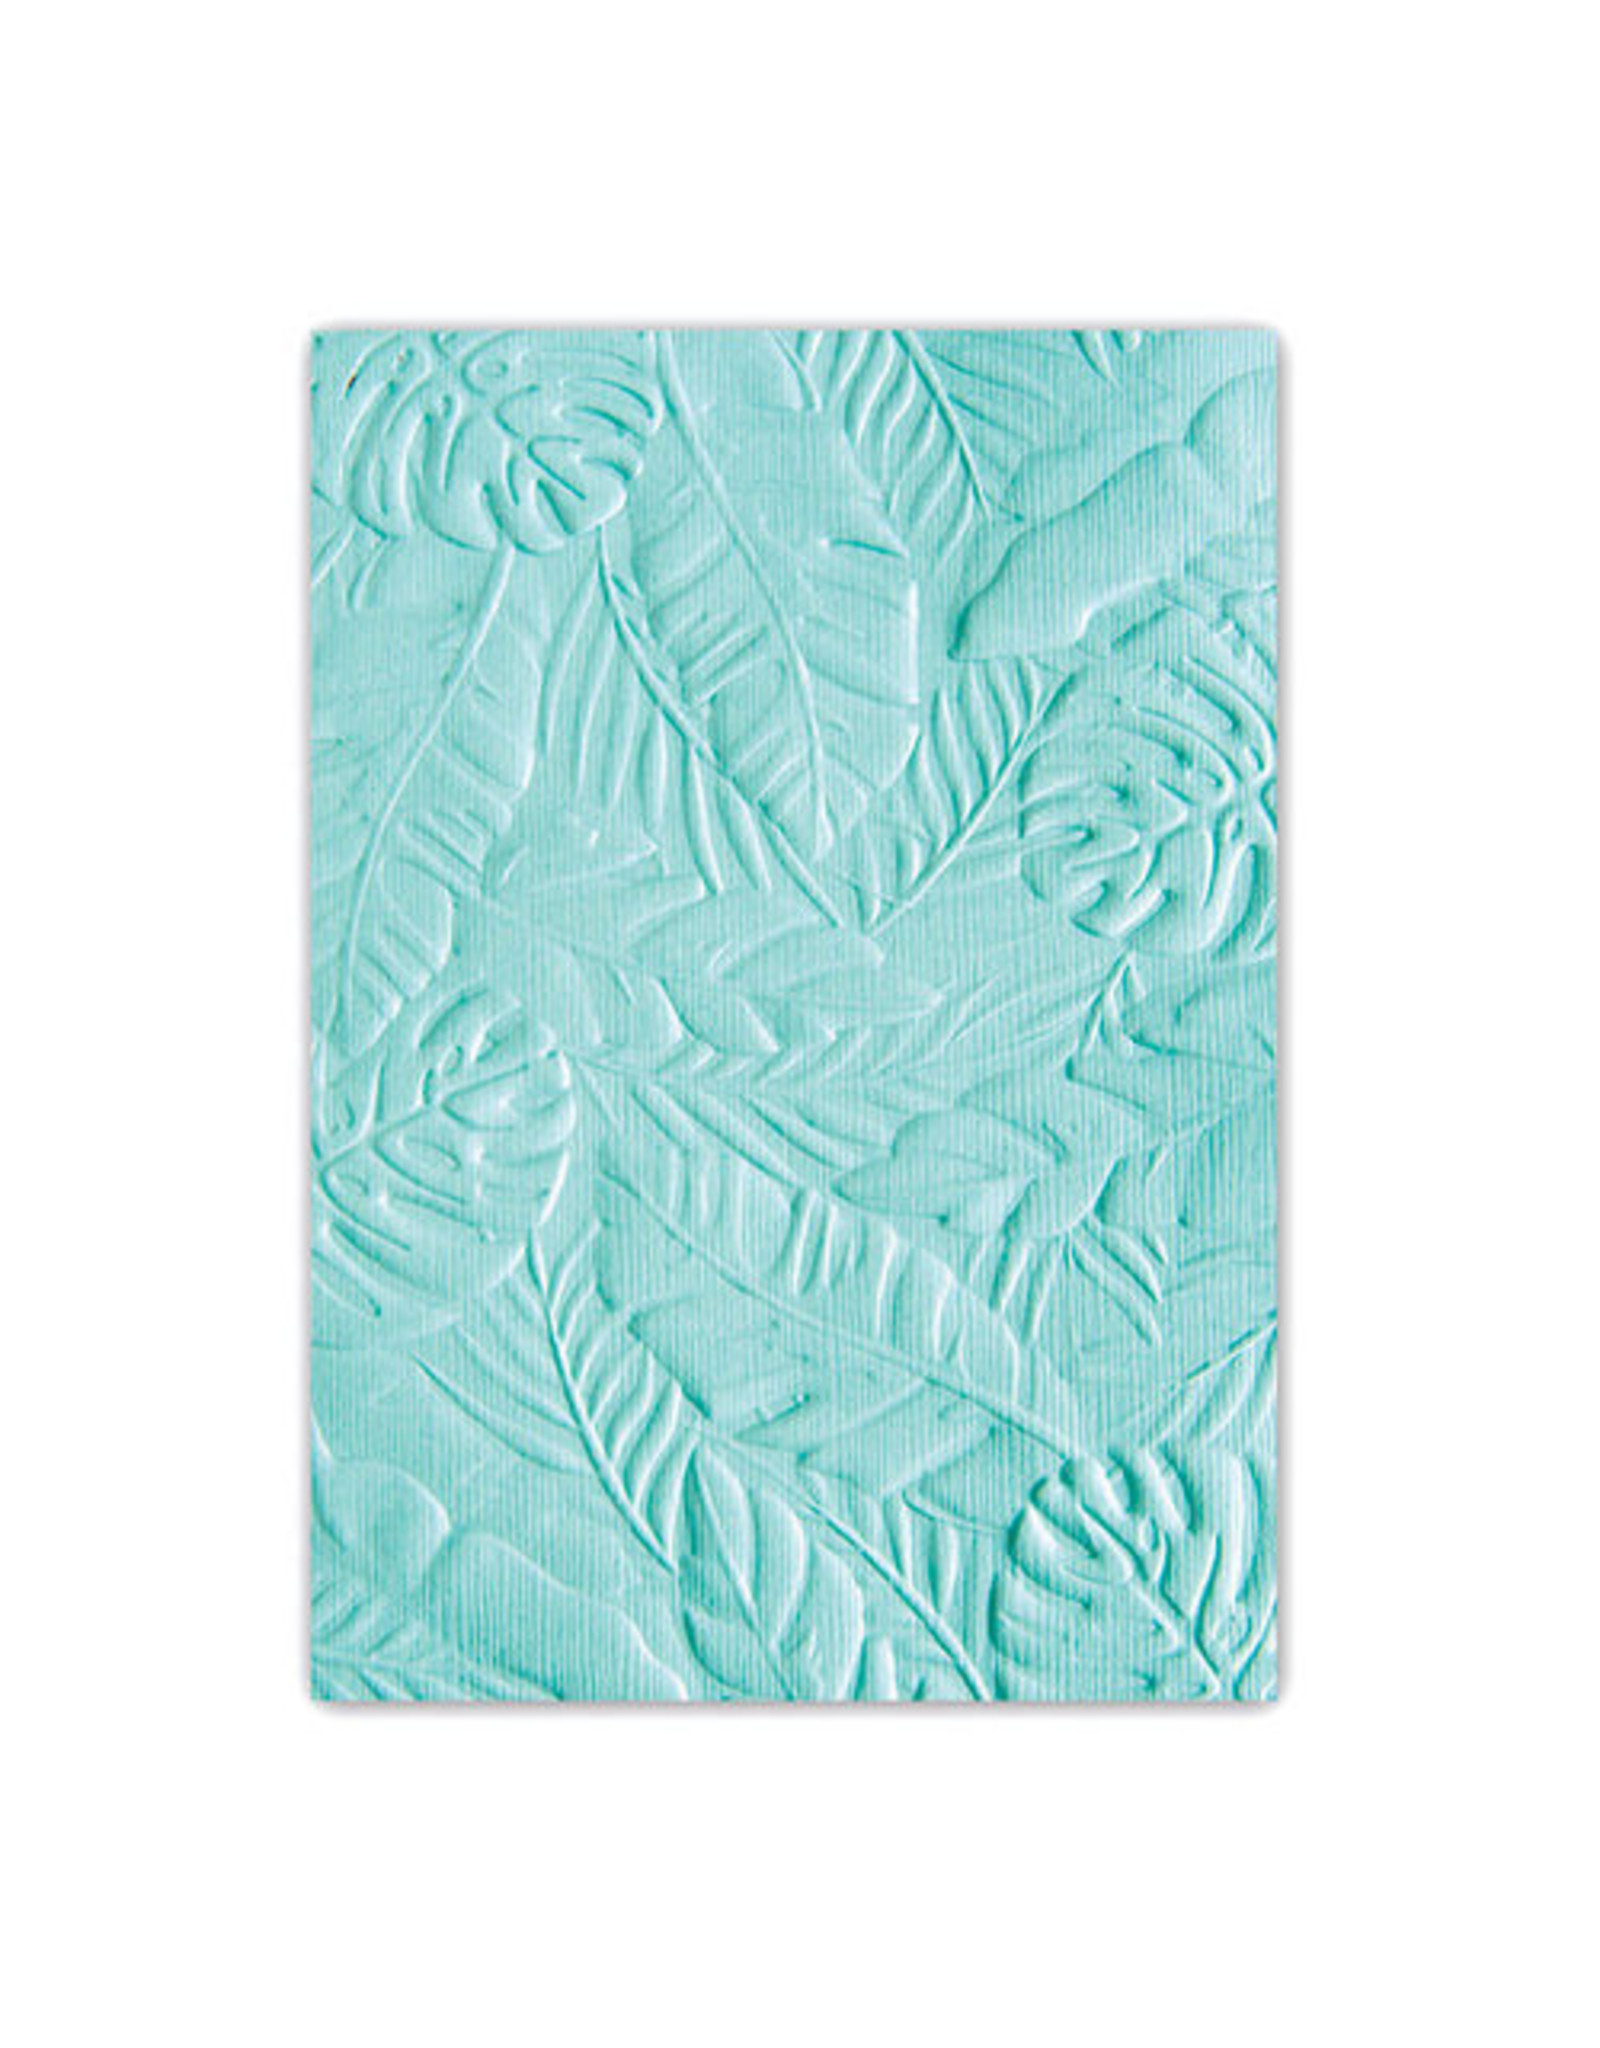 Ellison/Sizzix Tropical Leaves - 3D Textured Impressions (A6) Embossing Folder